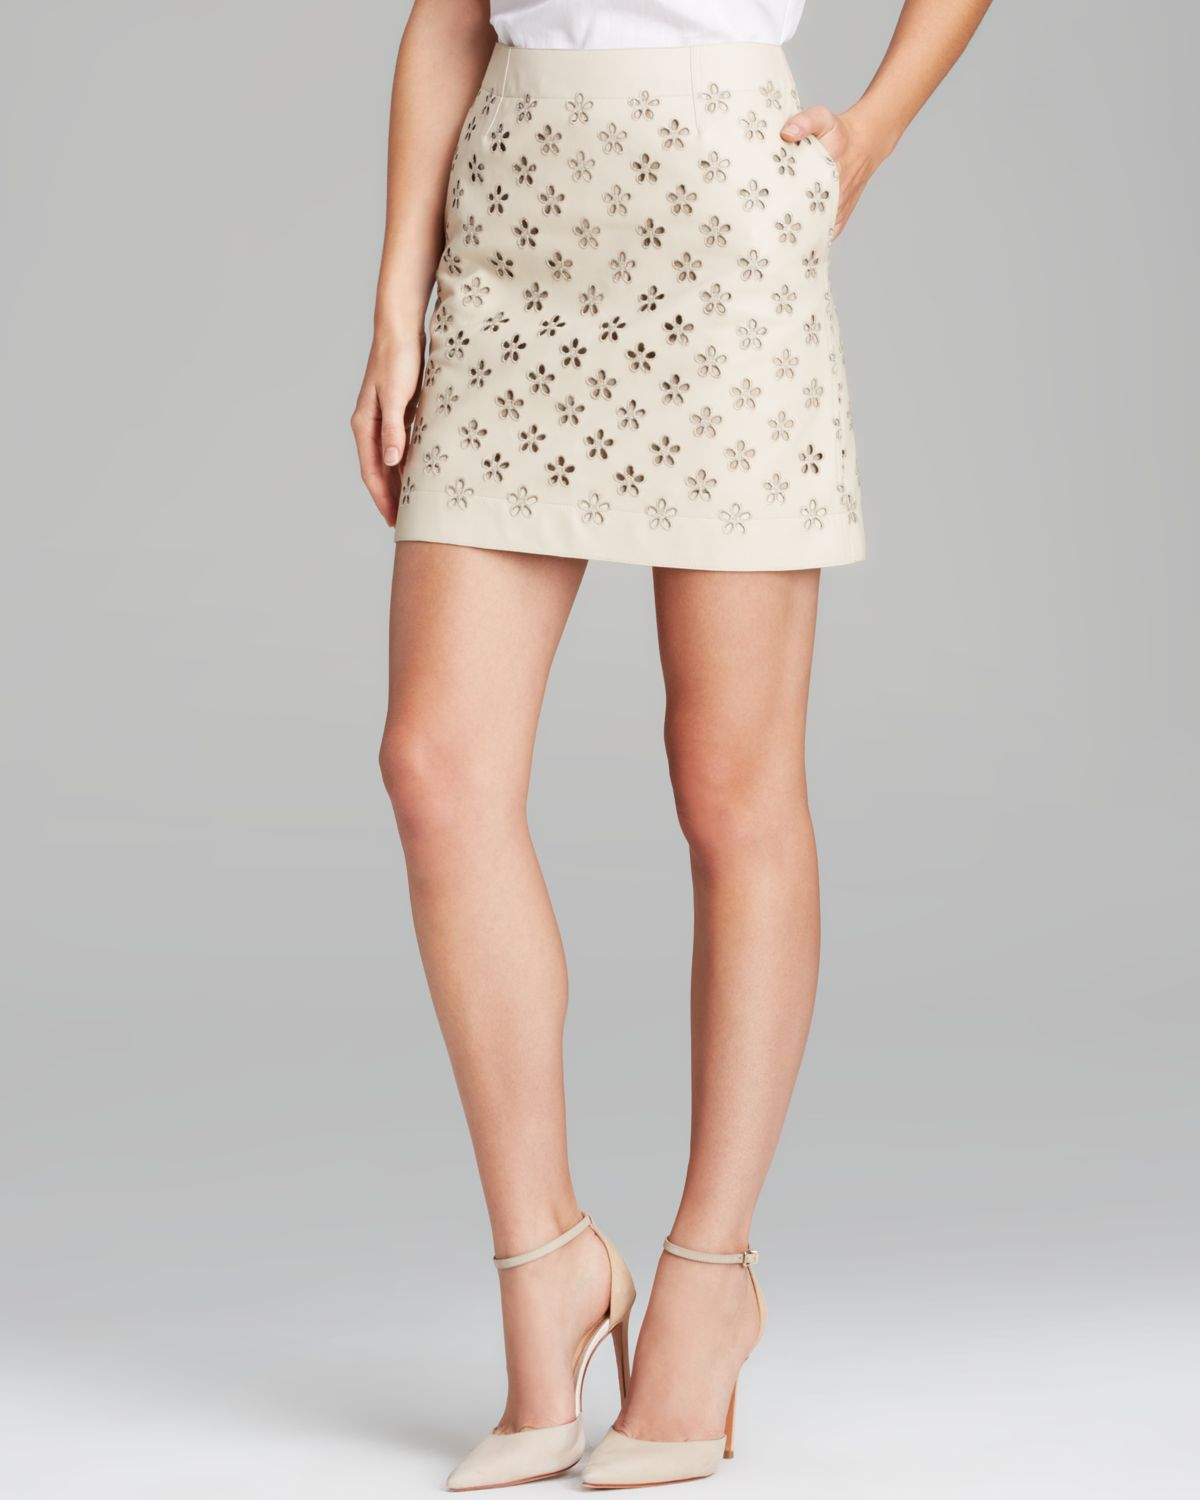 Burberry Brit Laser Cut Flower Mini Skirt in Yellow | Lyst